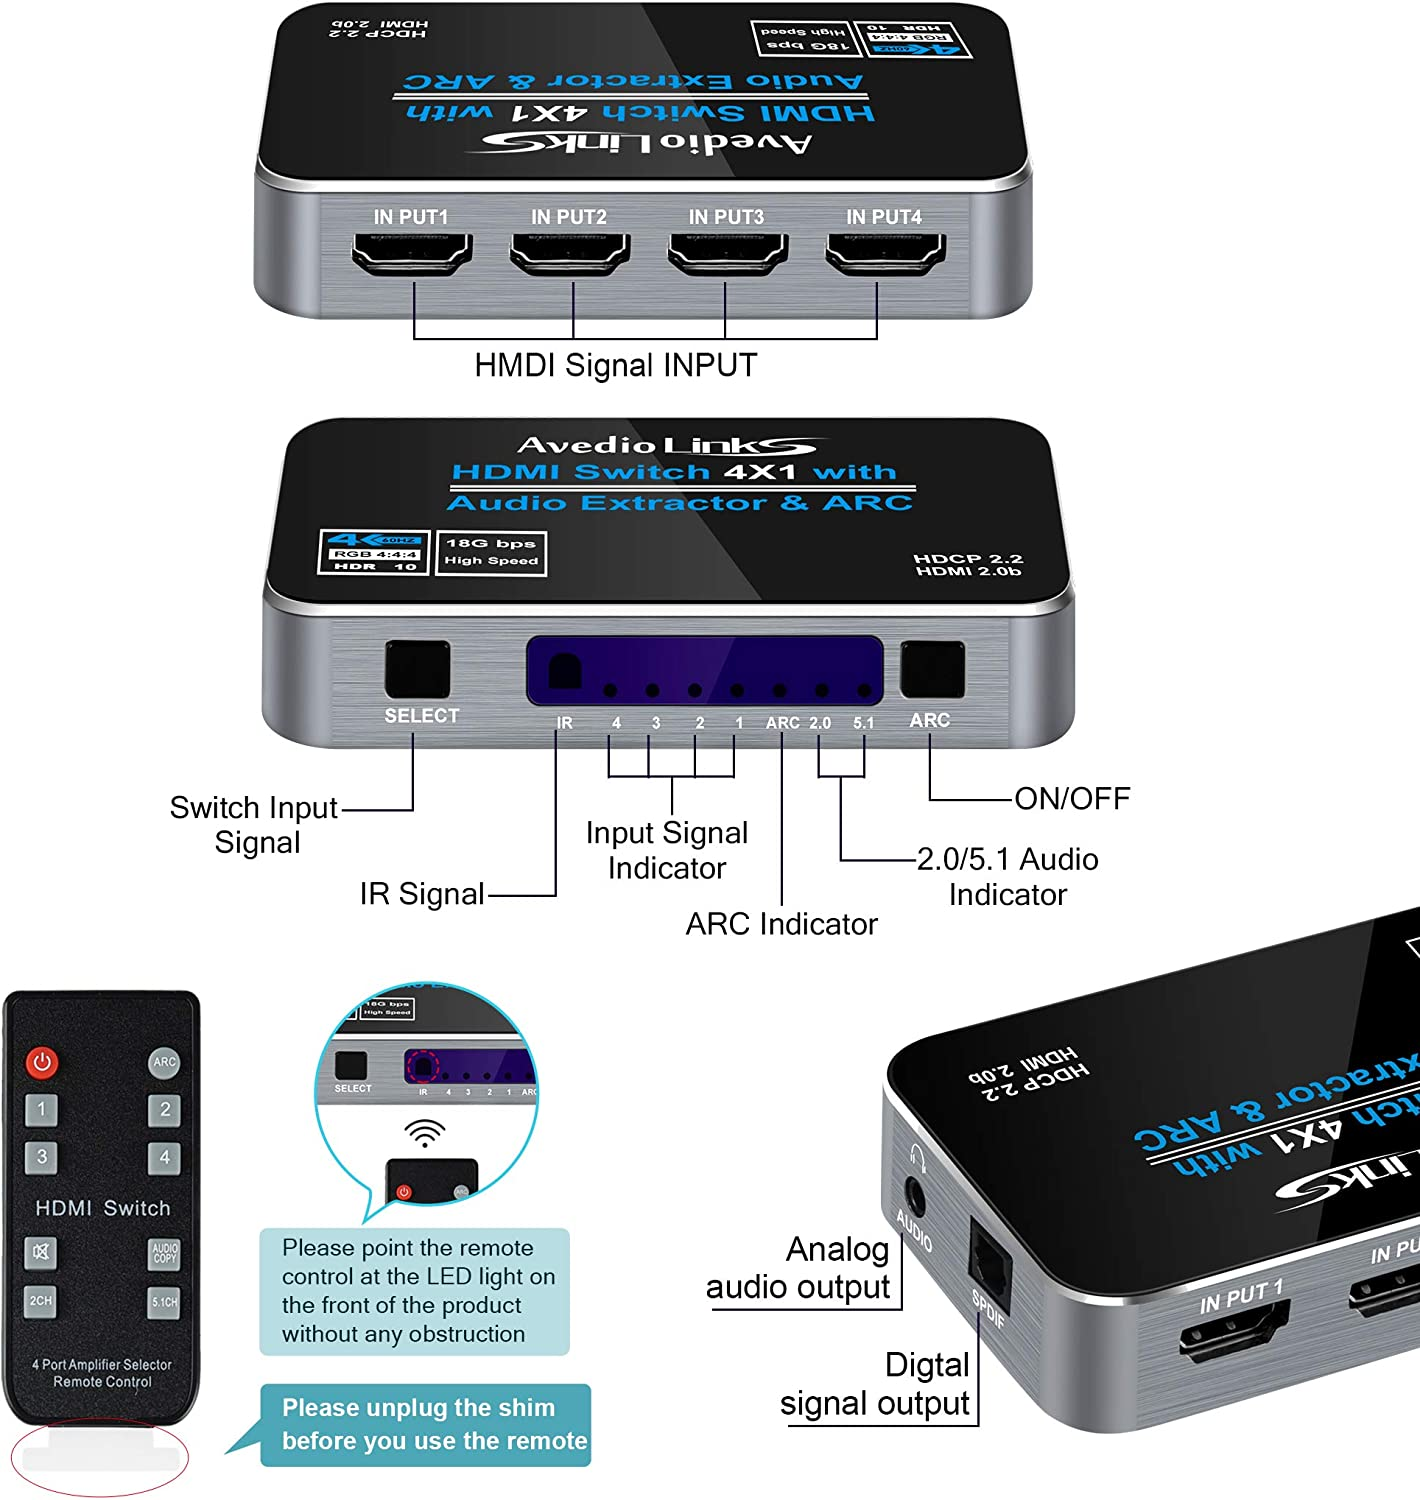 HDMI Switch 4 in 1 Out with Remote avedio links 4K@60Hz 4 Ports HDMI Switcher Box with Optical /& 3.5mm Stereo Audio Out Gray 3D Support ARC,HDCP2.2 HDMI2.0b Switch 4x1 with Audio Extractor